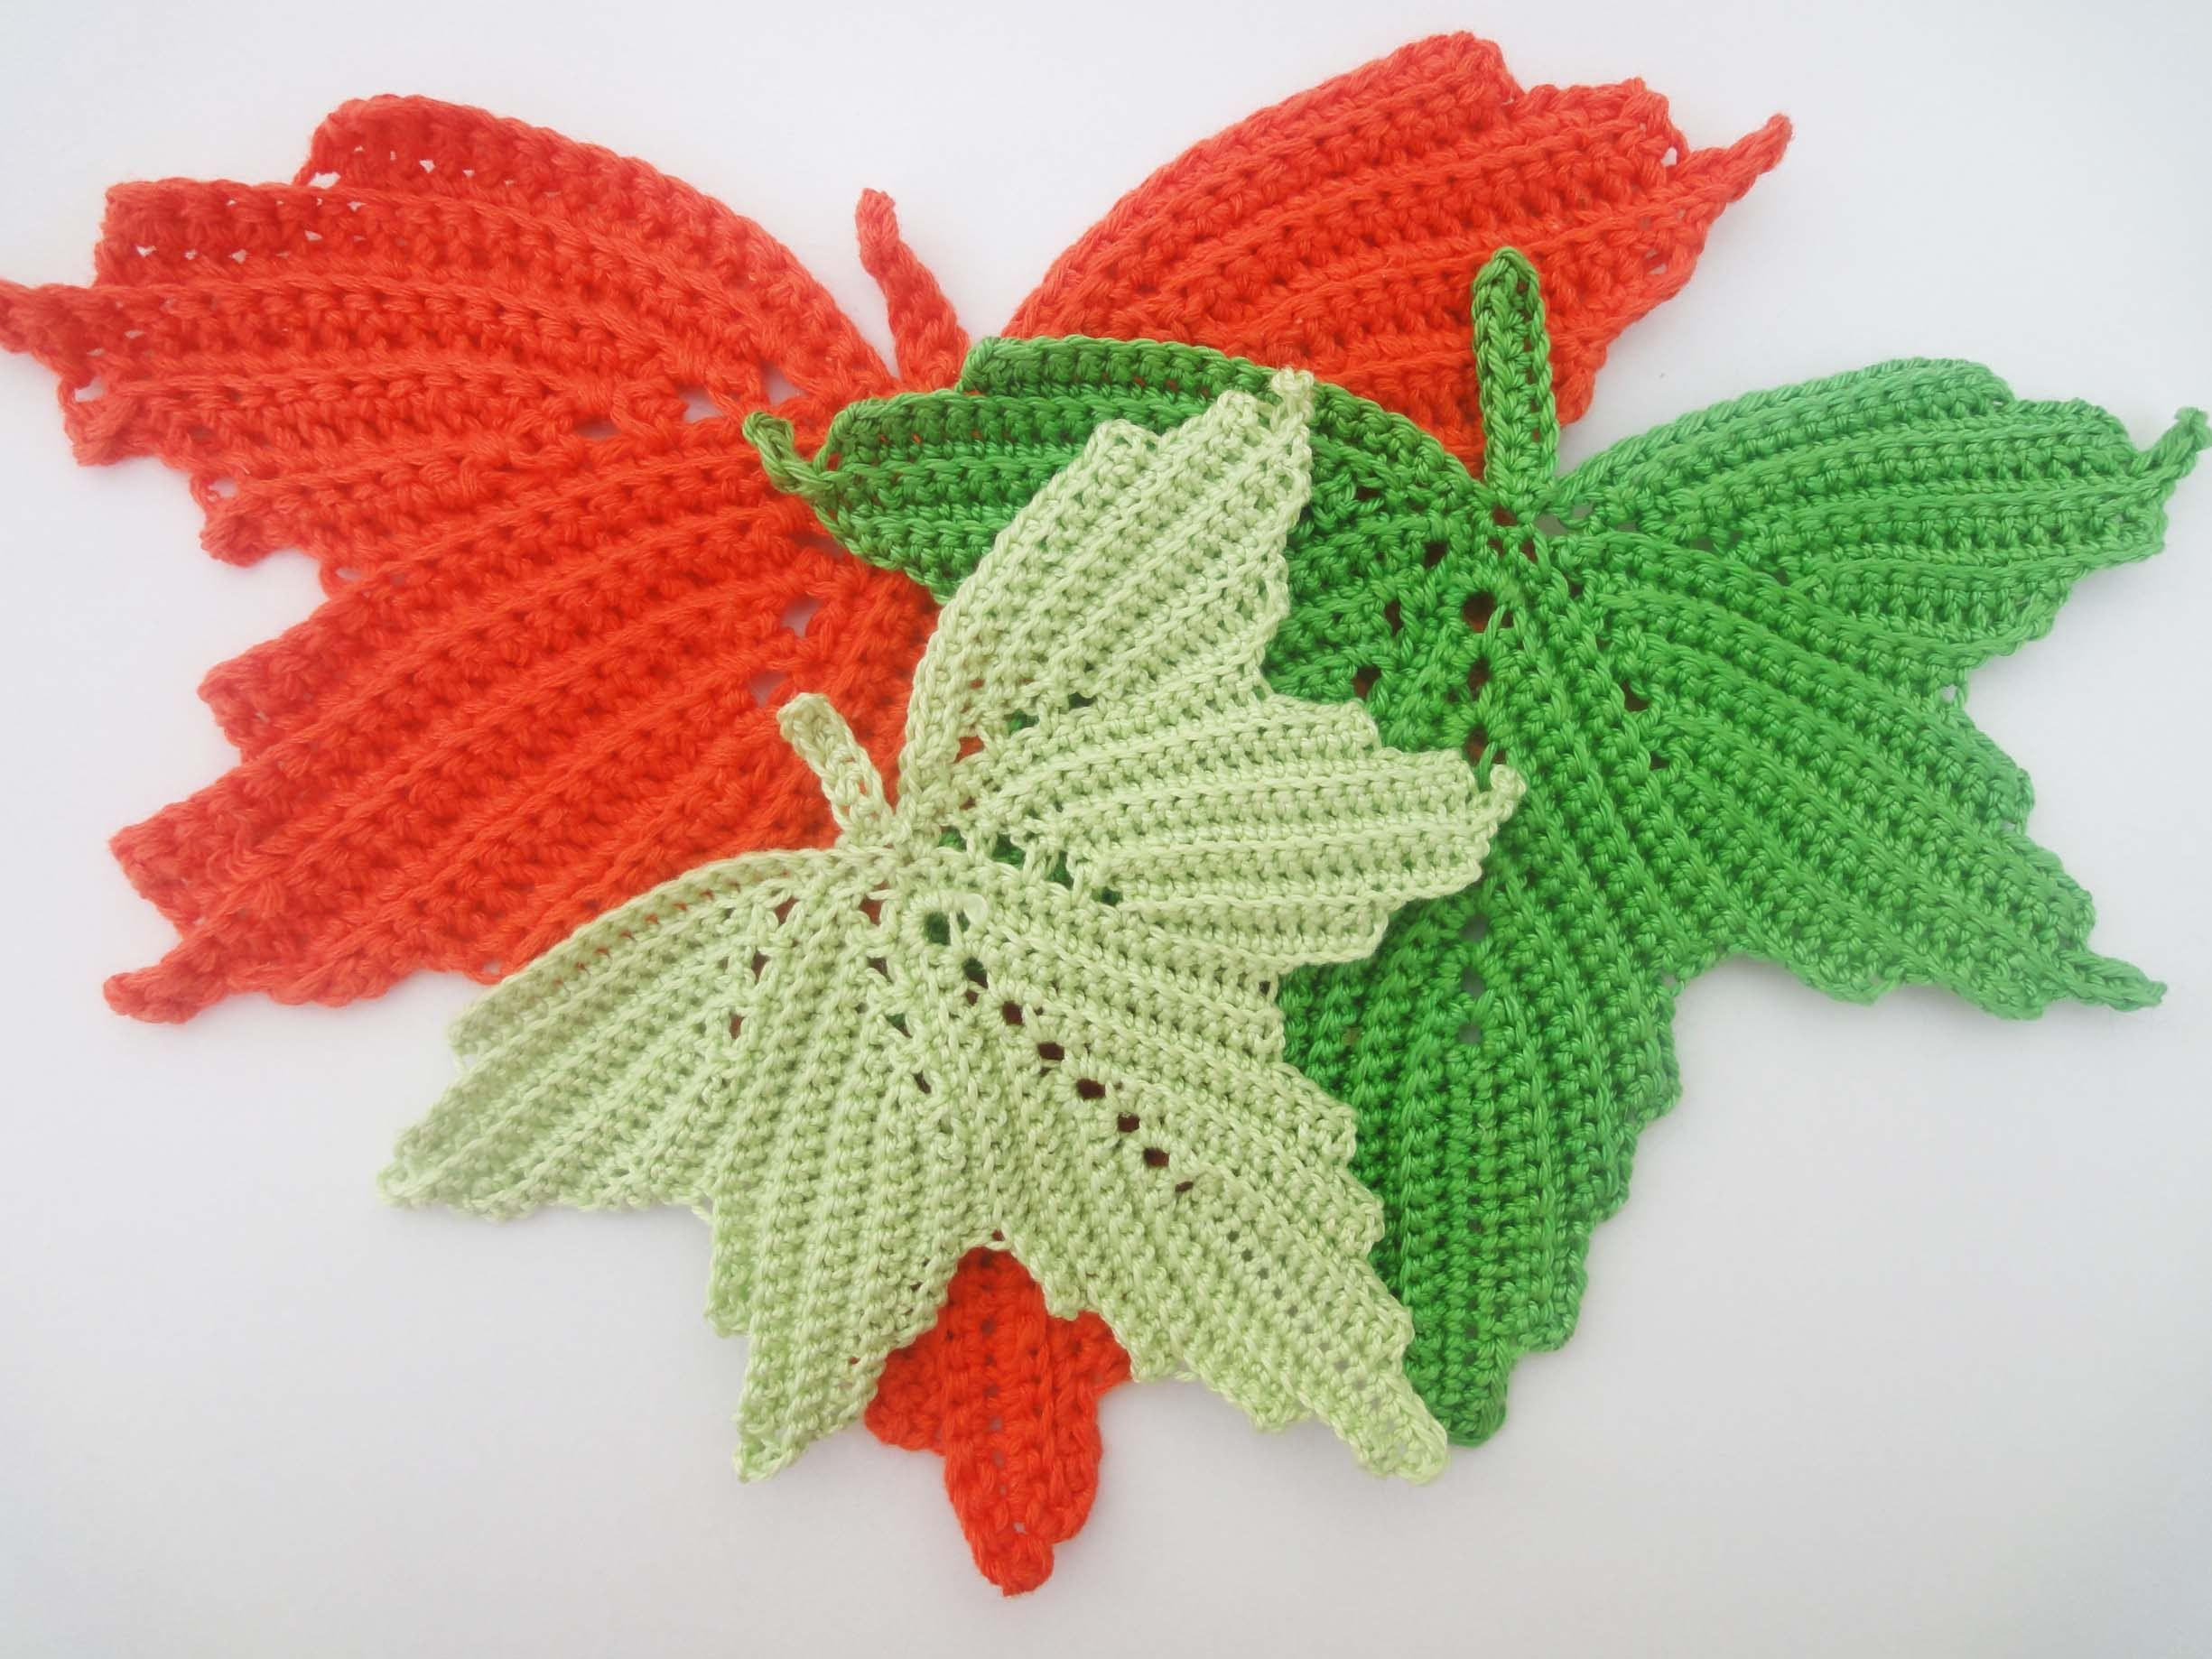 Схема вязания кленового листа Scheme knitting maple leaf http://natalikorneeva.blogspot.com/2014/08/1-maple-leaf-crochet-part-1.html Кленовый лист Часть 1 Th...